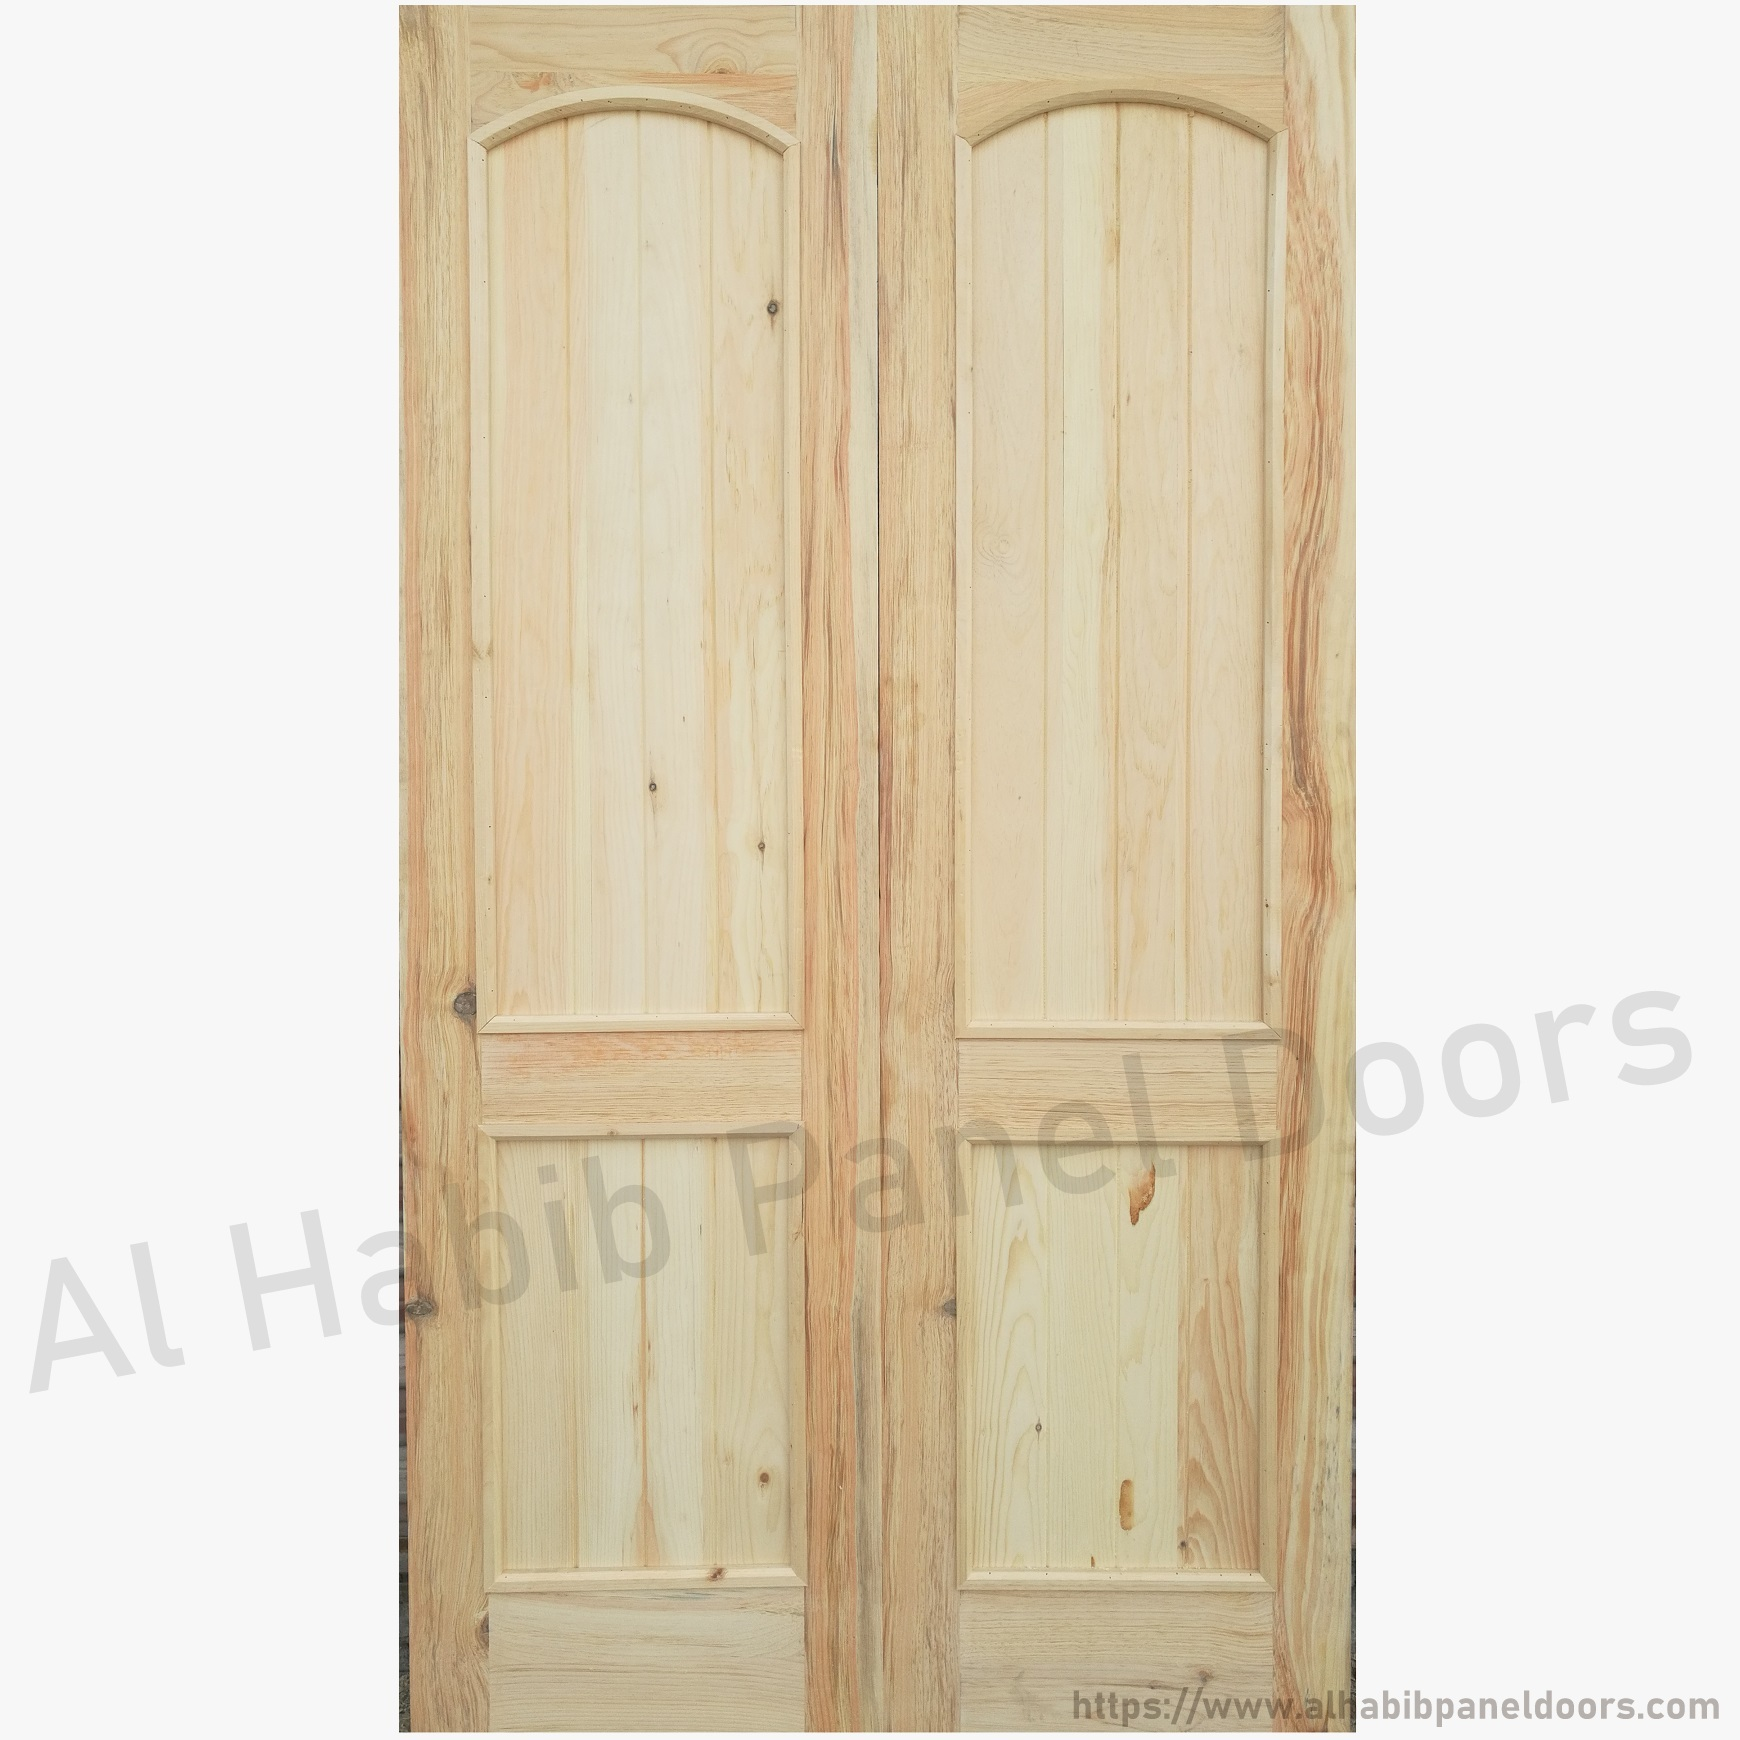 Main solid double door hpd326 main doors al habib for Main two door designs